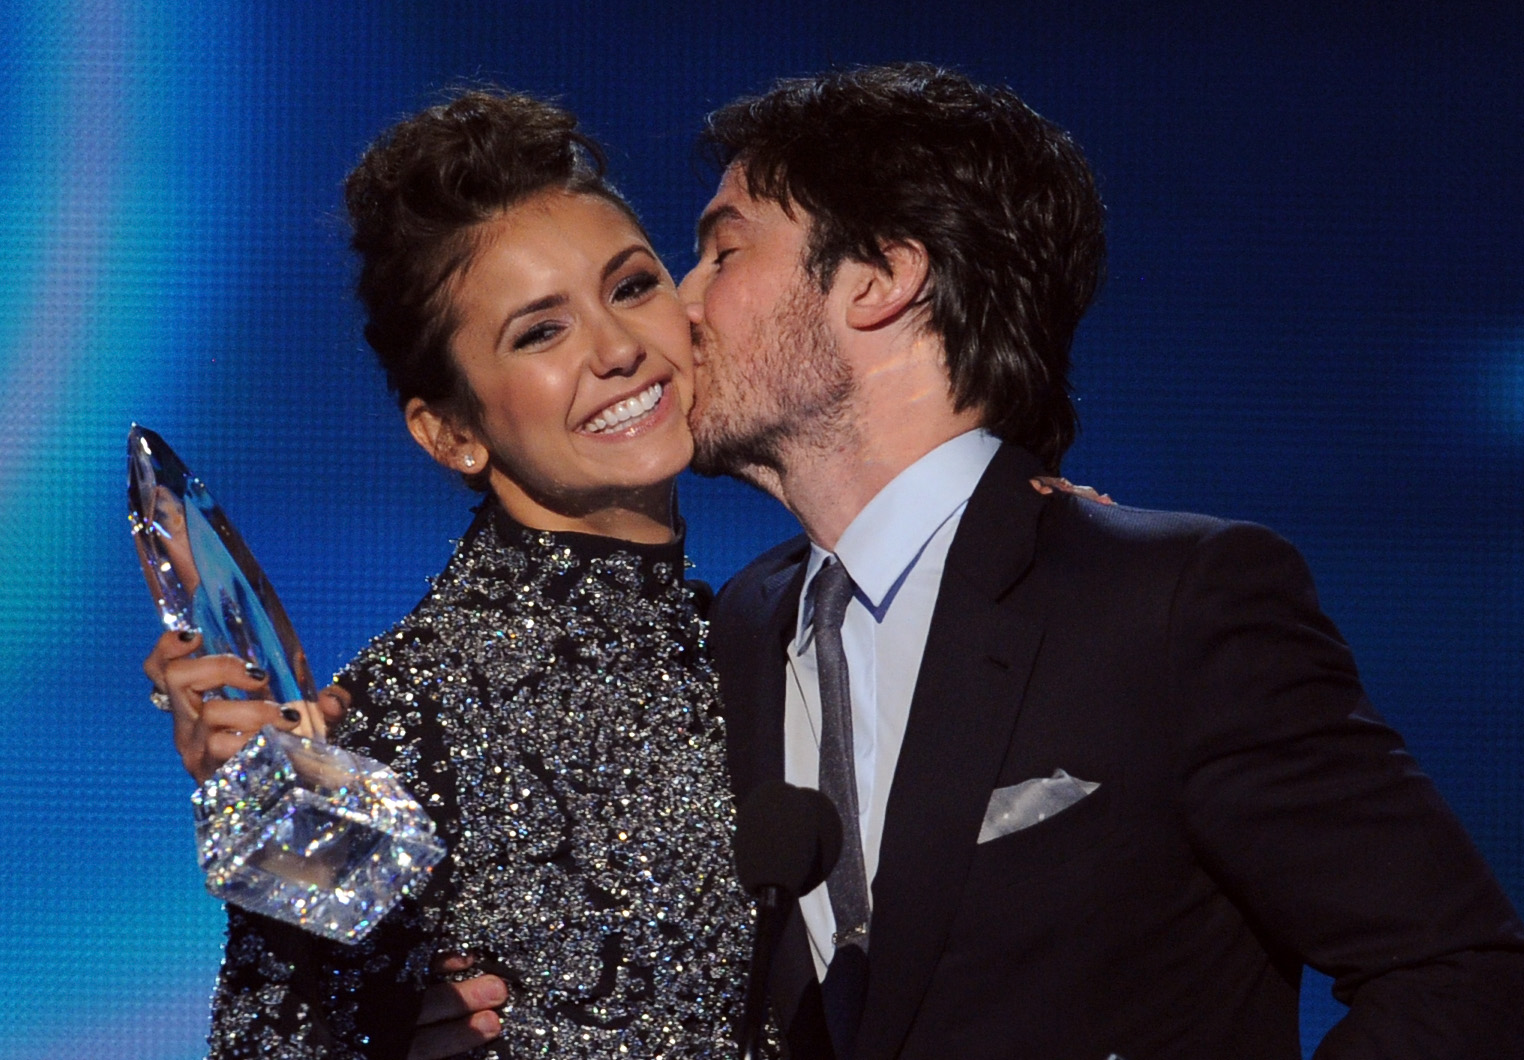 Give stars nina dobrev dating